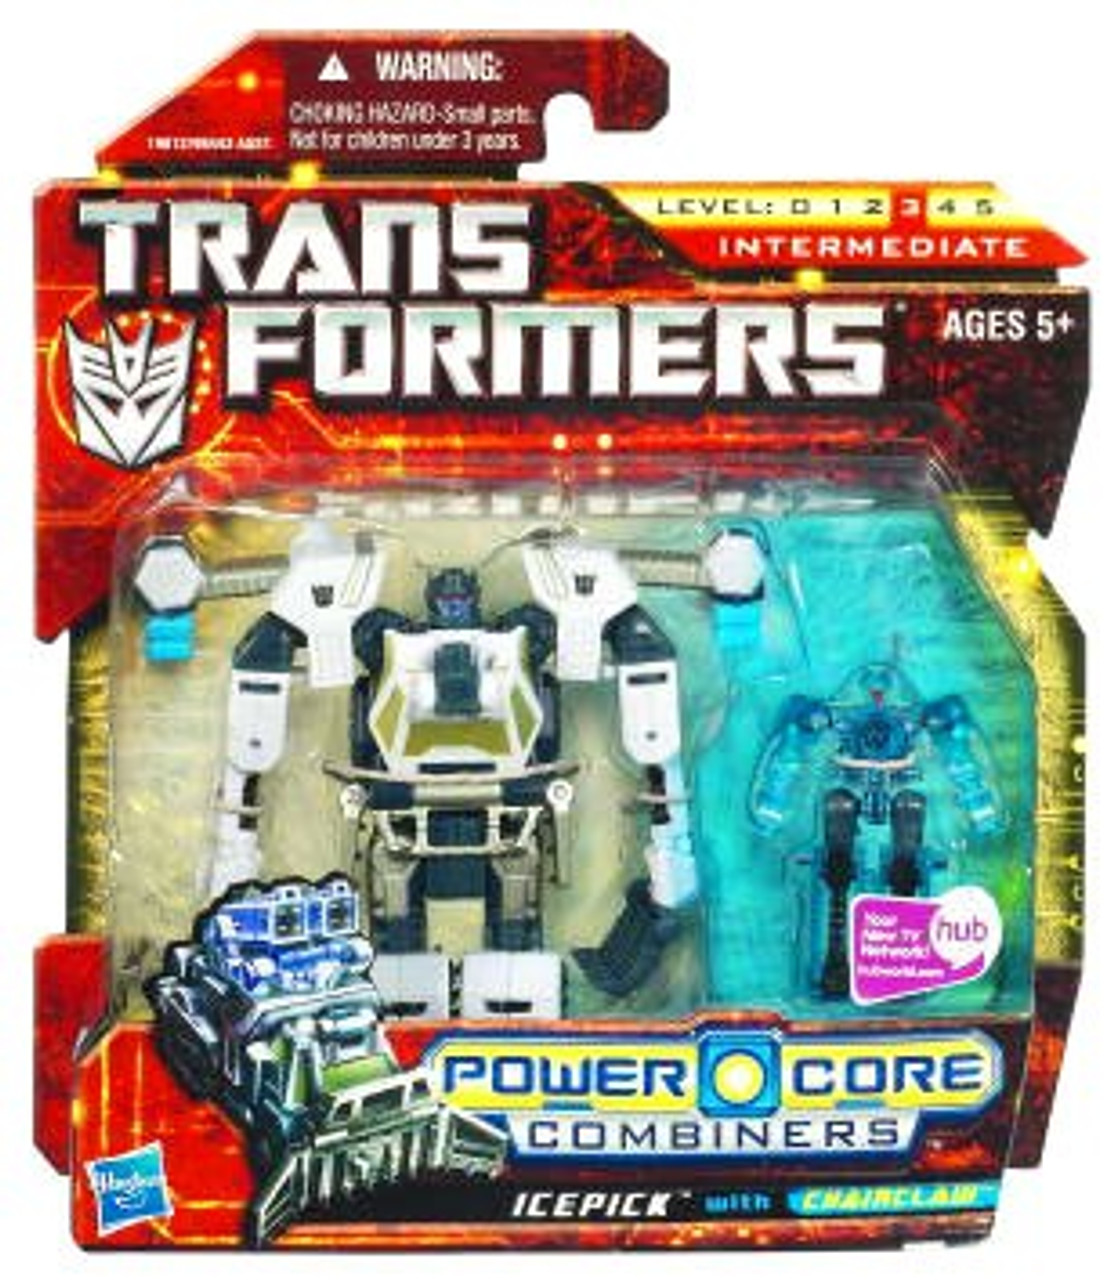 Transformers Power Core Combiners Icepick with Chainclaw Action Figure 2-Pack